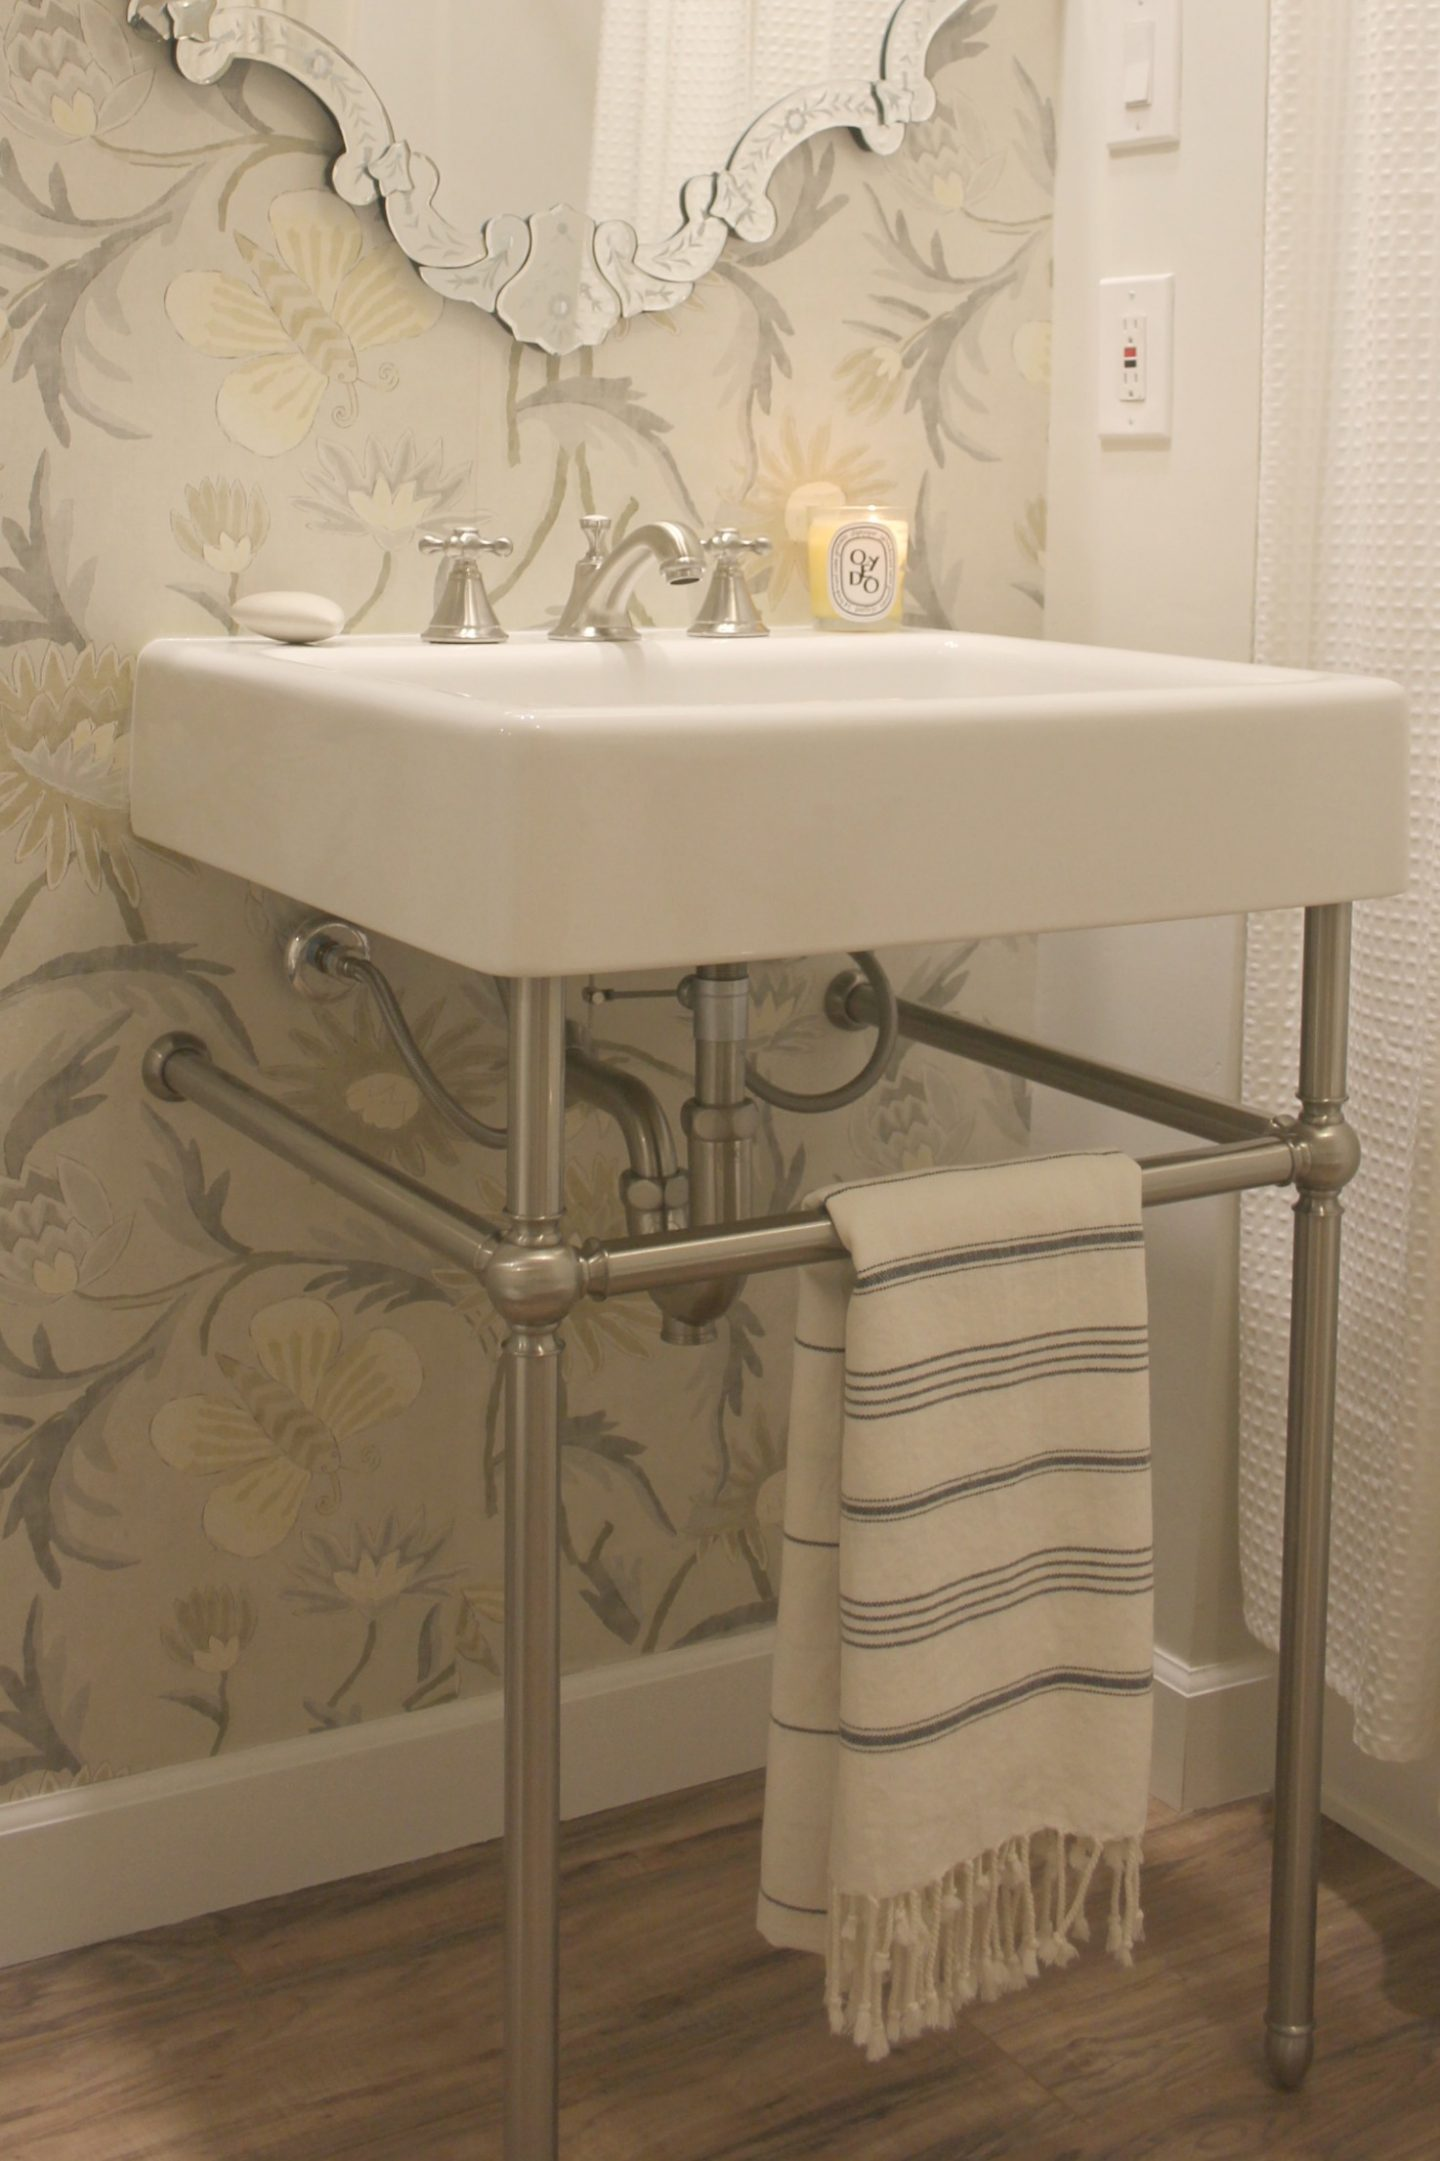 An elegant console sink, wallpaper, and a Venetian mirror in a classic, spa-like bathroom by Hello Lovely. #beforeandafter #bathroommakeover #DIY #renovation